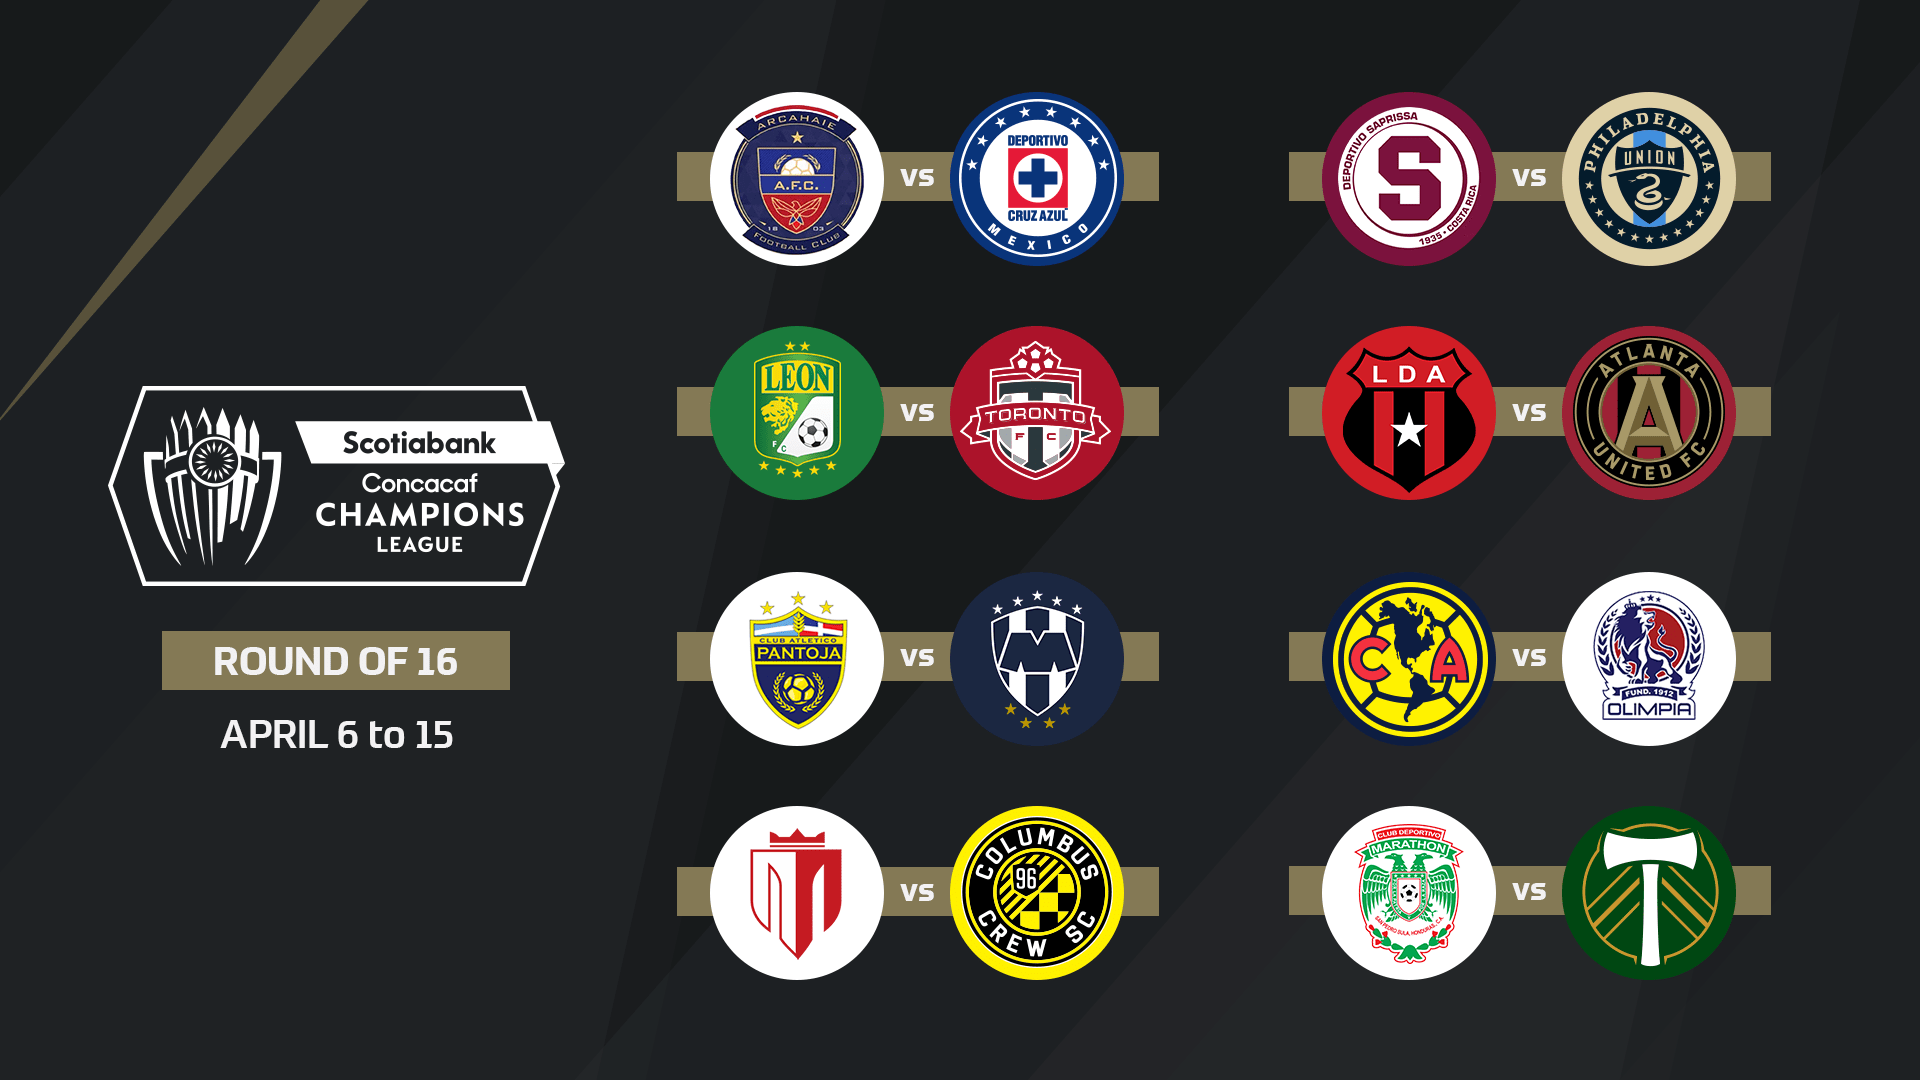 Concacaf Champions League 2021: How to watch, stream as region's best face off | MLSSoccer.com